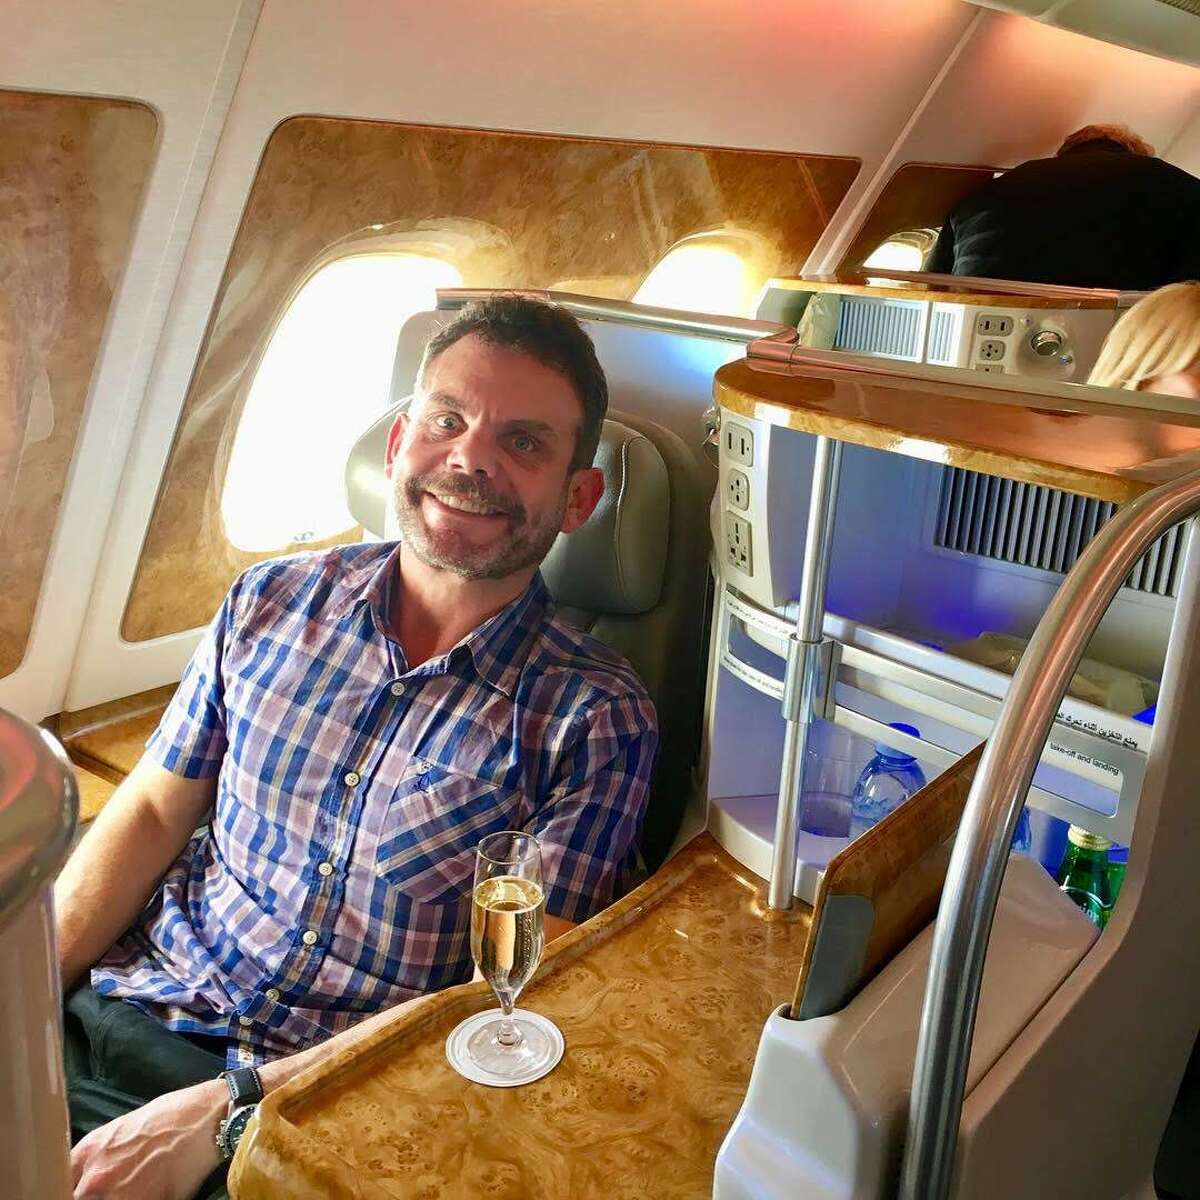 Reader Jason Vaudrey redeemed 210,000 Alaska Airlines miles for a ride in Emirates business class- this is the new version pictured- note the wood paneling- SEE SLIDESHOW at the top of this post for more photos